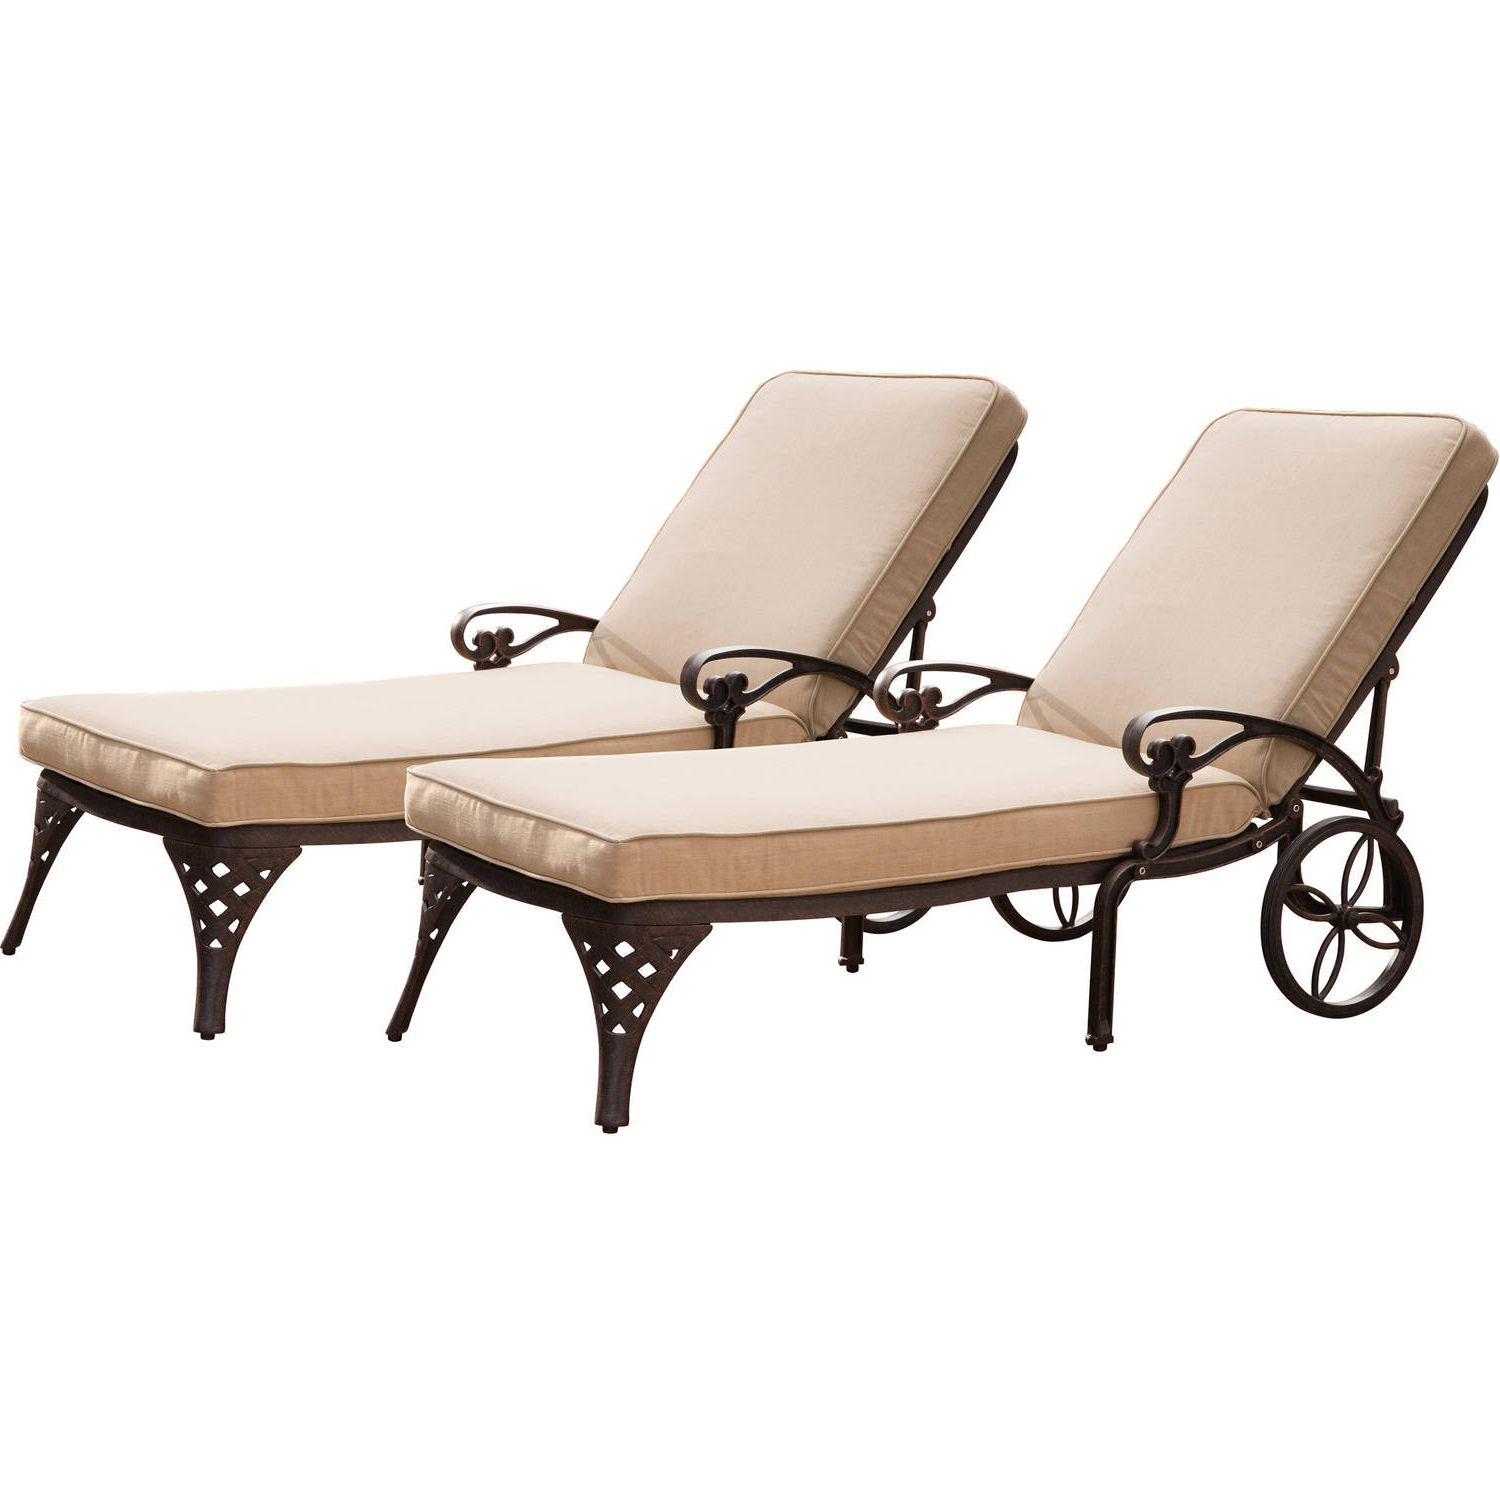 Home Styles Floral Blossom Outdoor Chaise Lounge Chair With Cushion, Charcoal Regarding Widely Used Floral Blossom Chaise Lounge Chairs With Cushion (View 13 of 25)